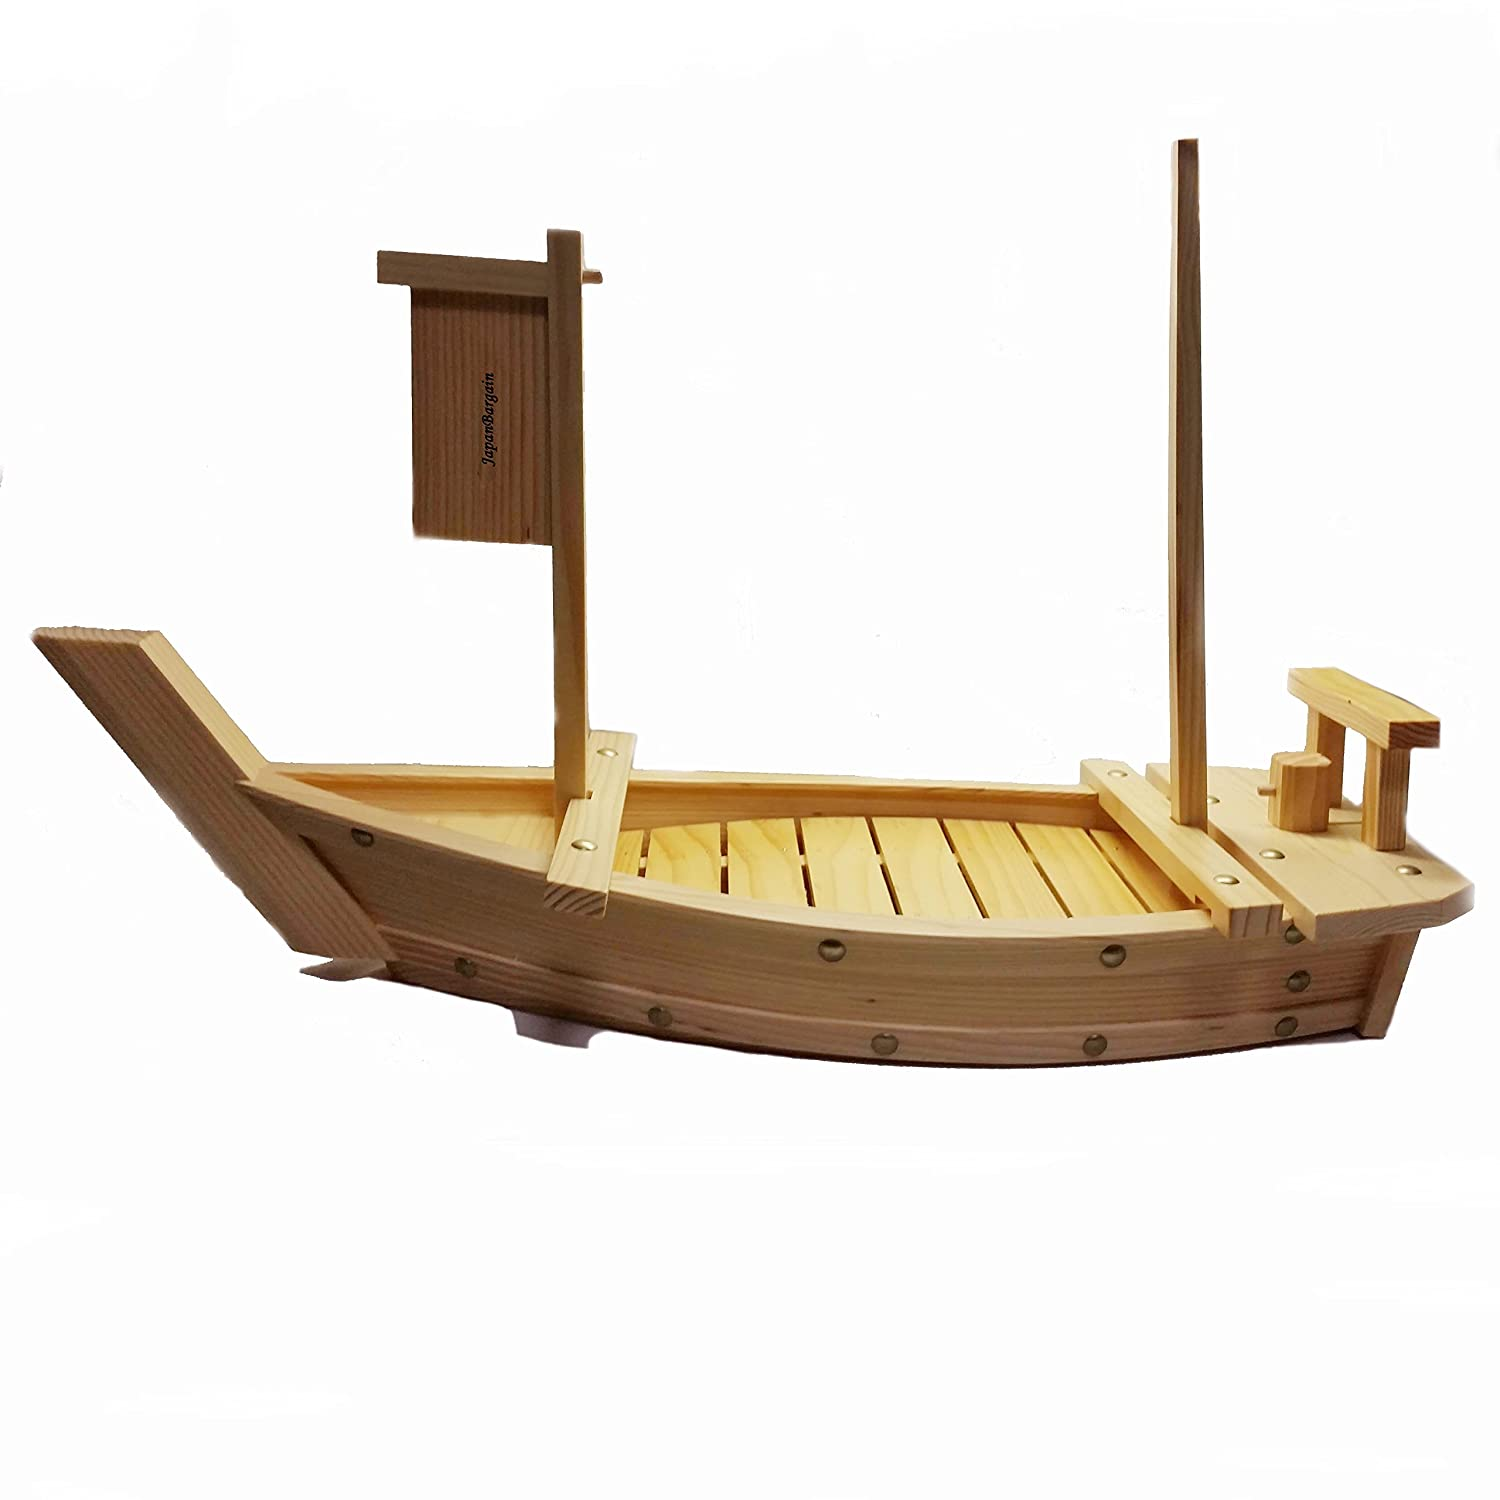 JapanBargain S-1582, Wooden Sushi Boat Serving Tray